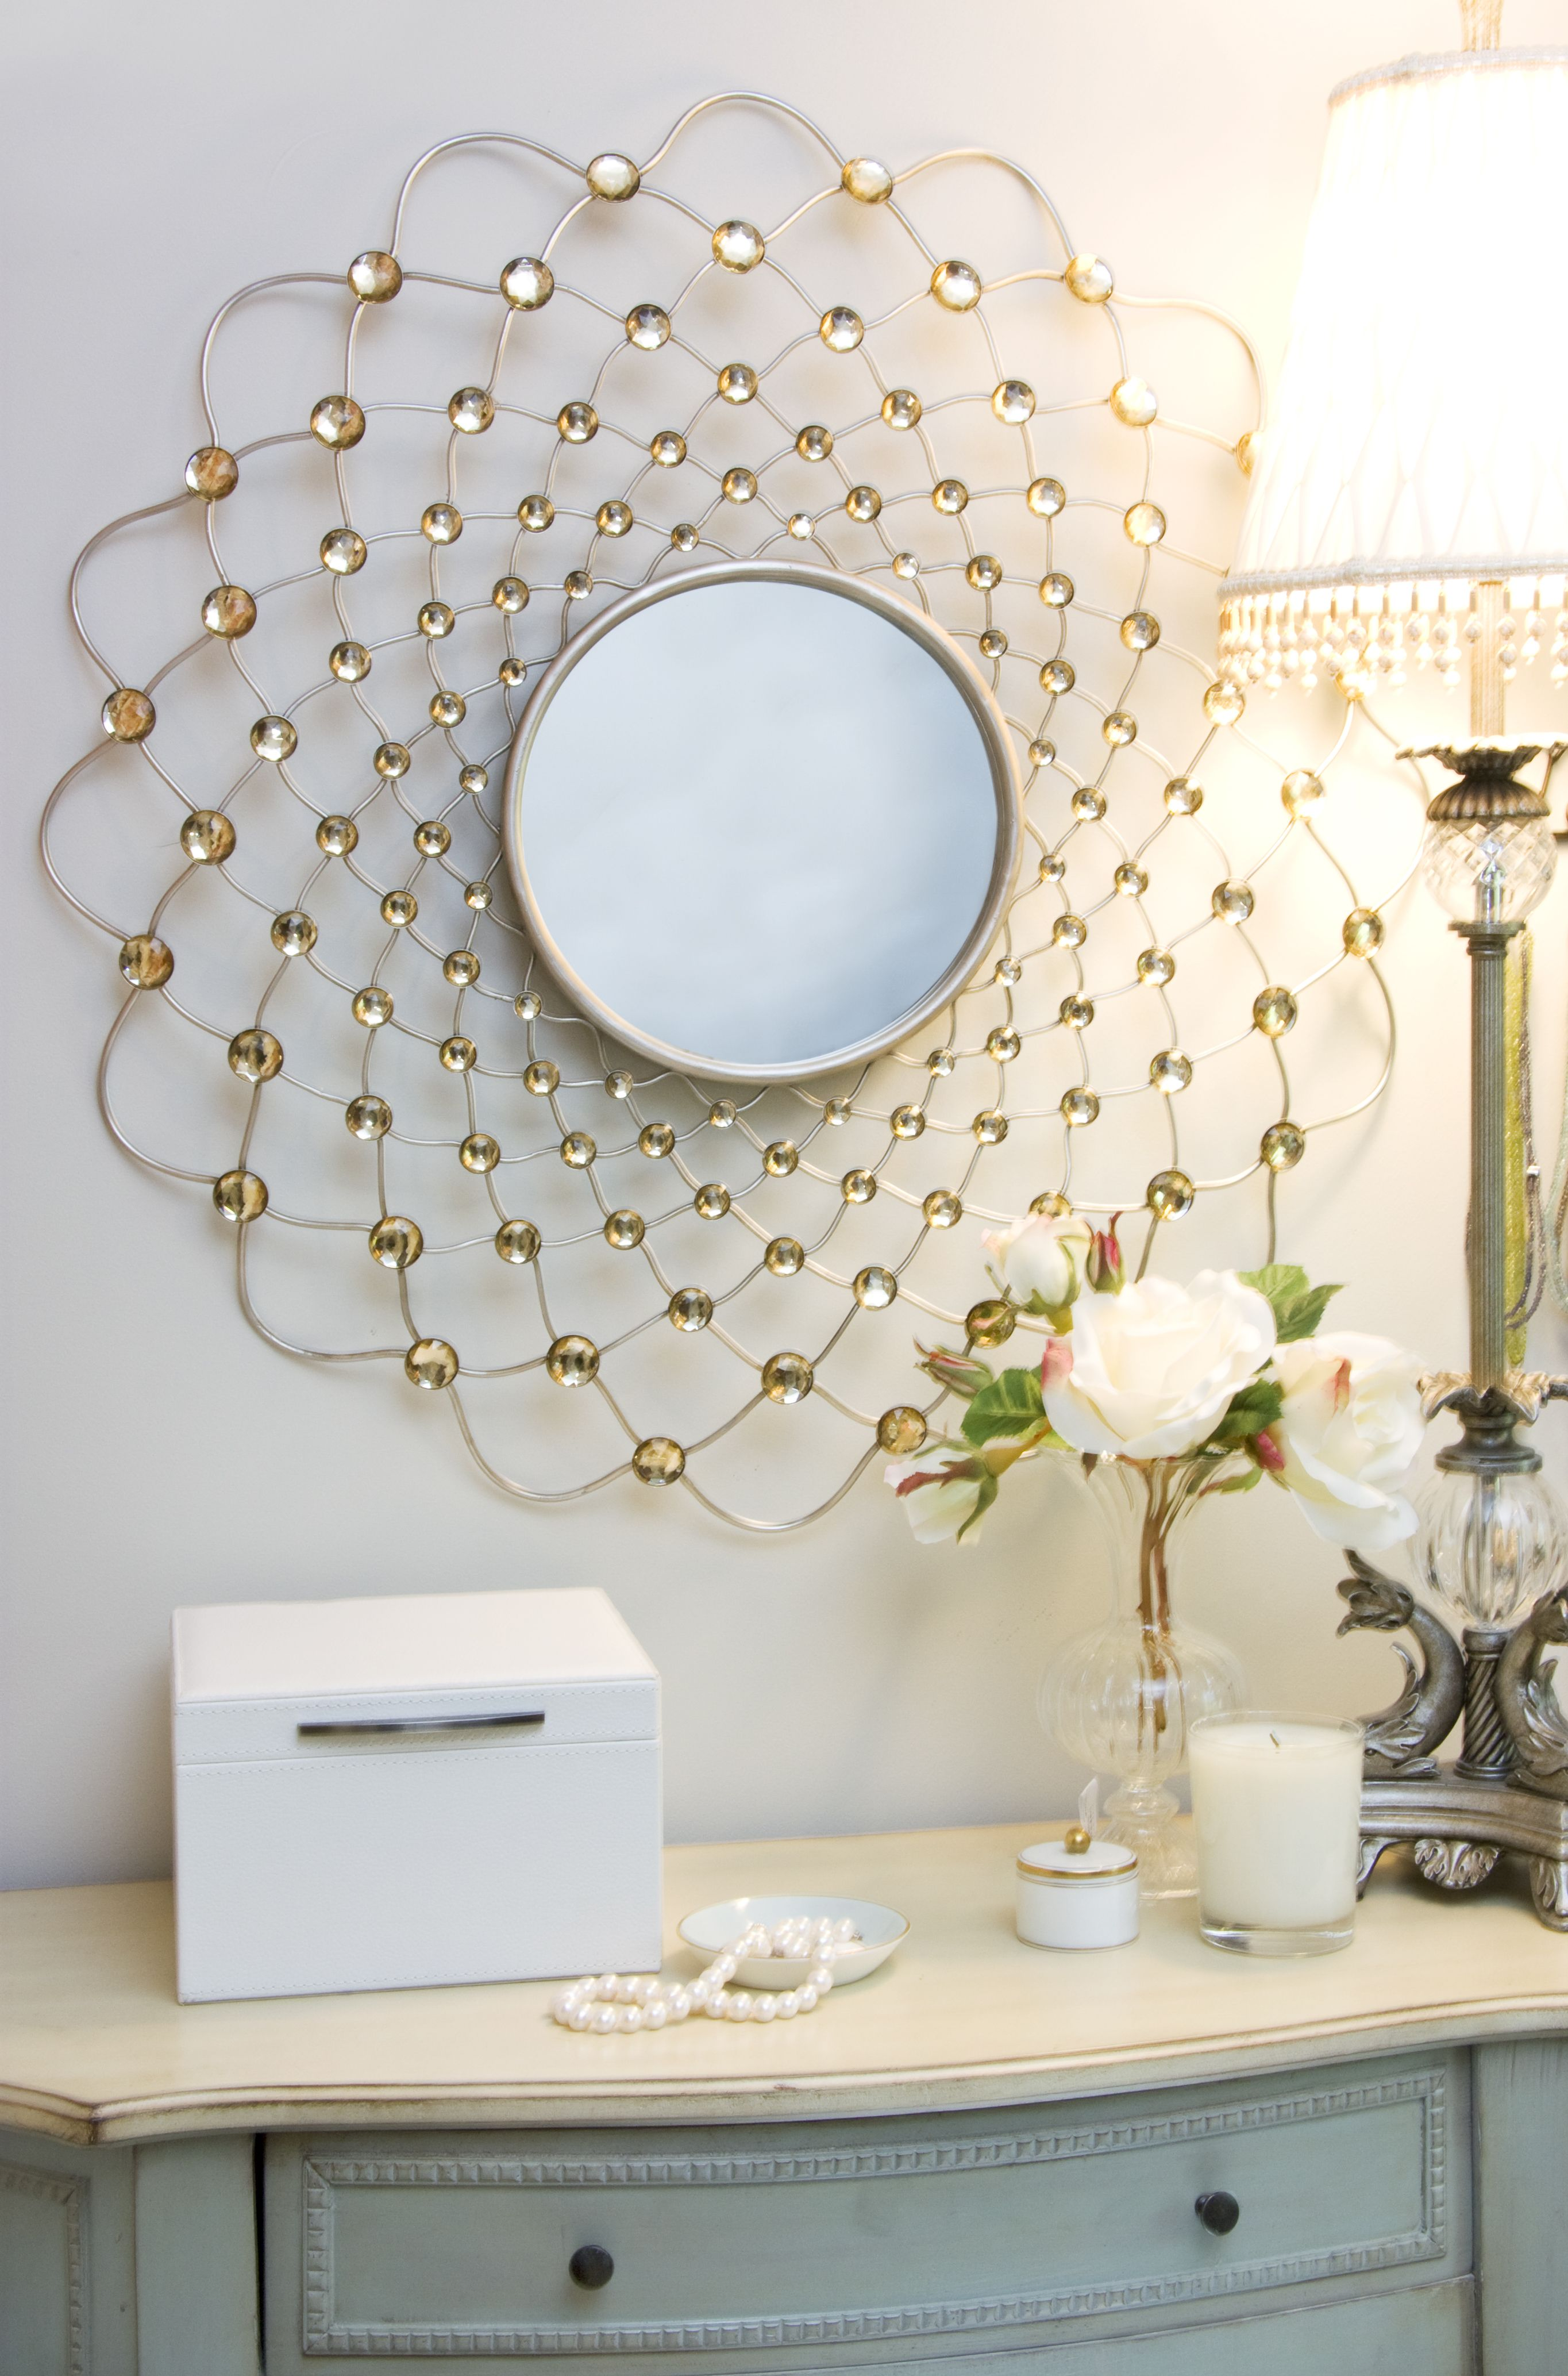 A Small Decorative Mirror Above Dresser Adds Some Functionality For Putting Jewelry On